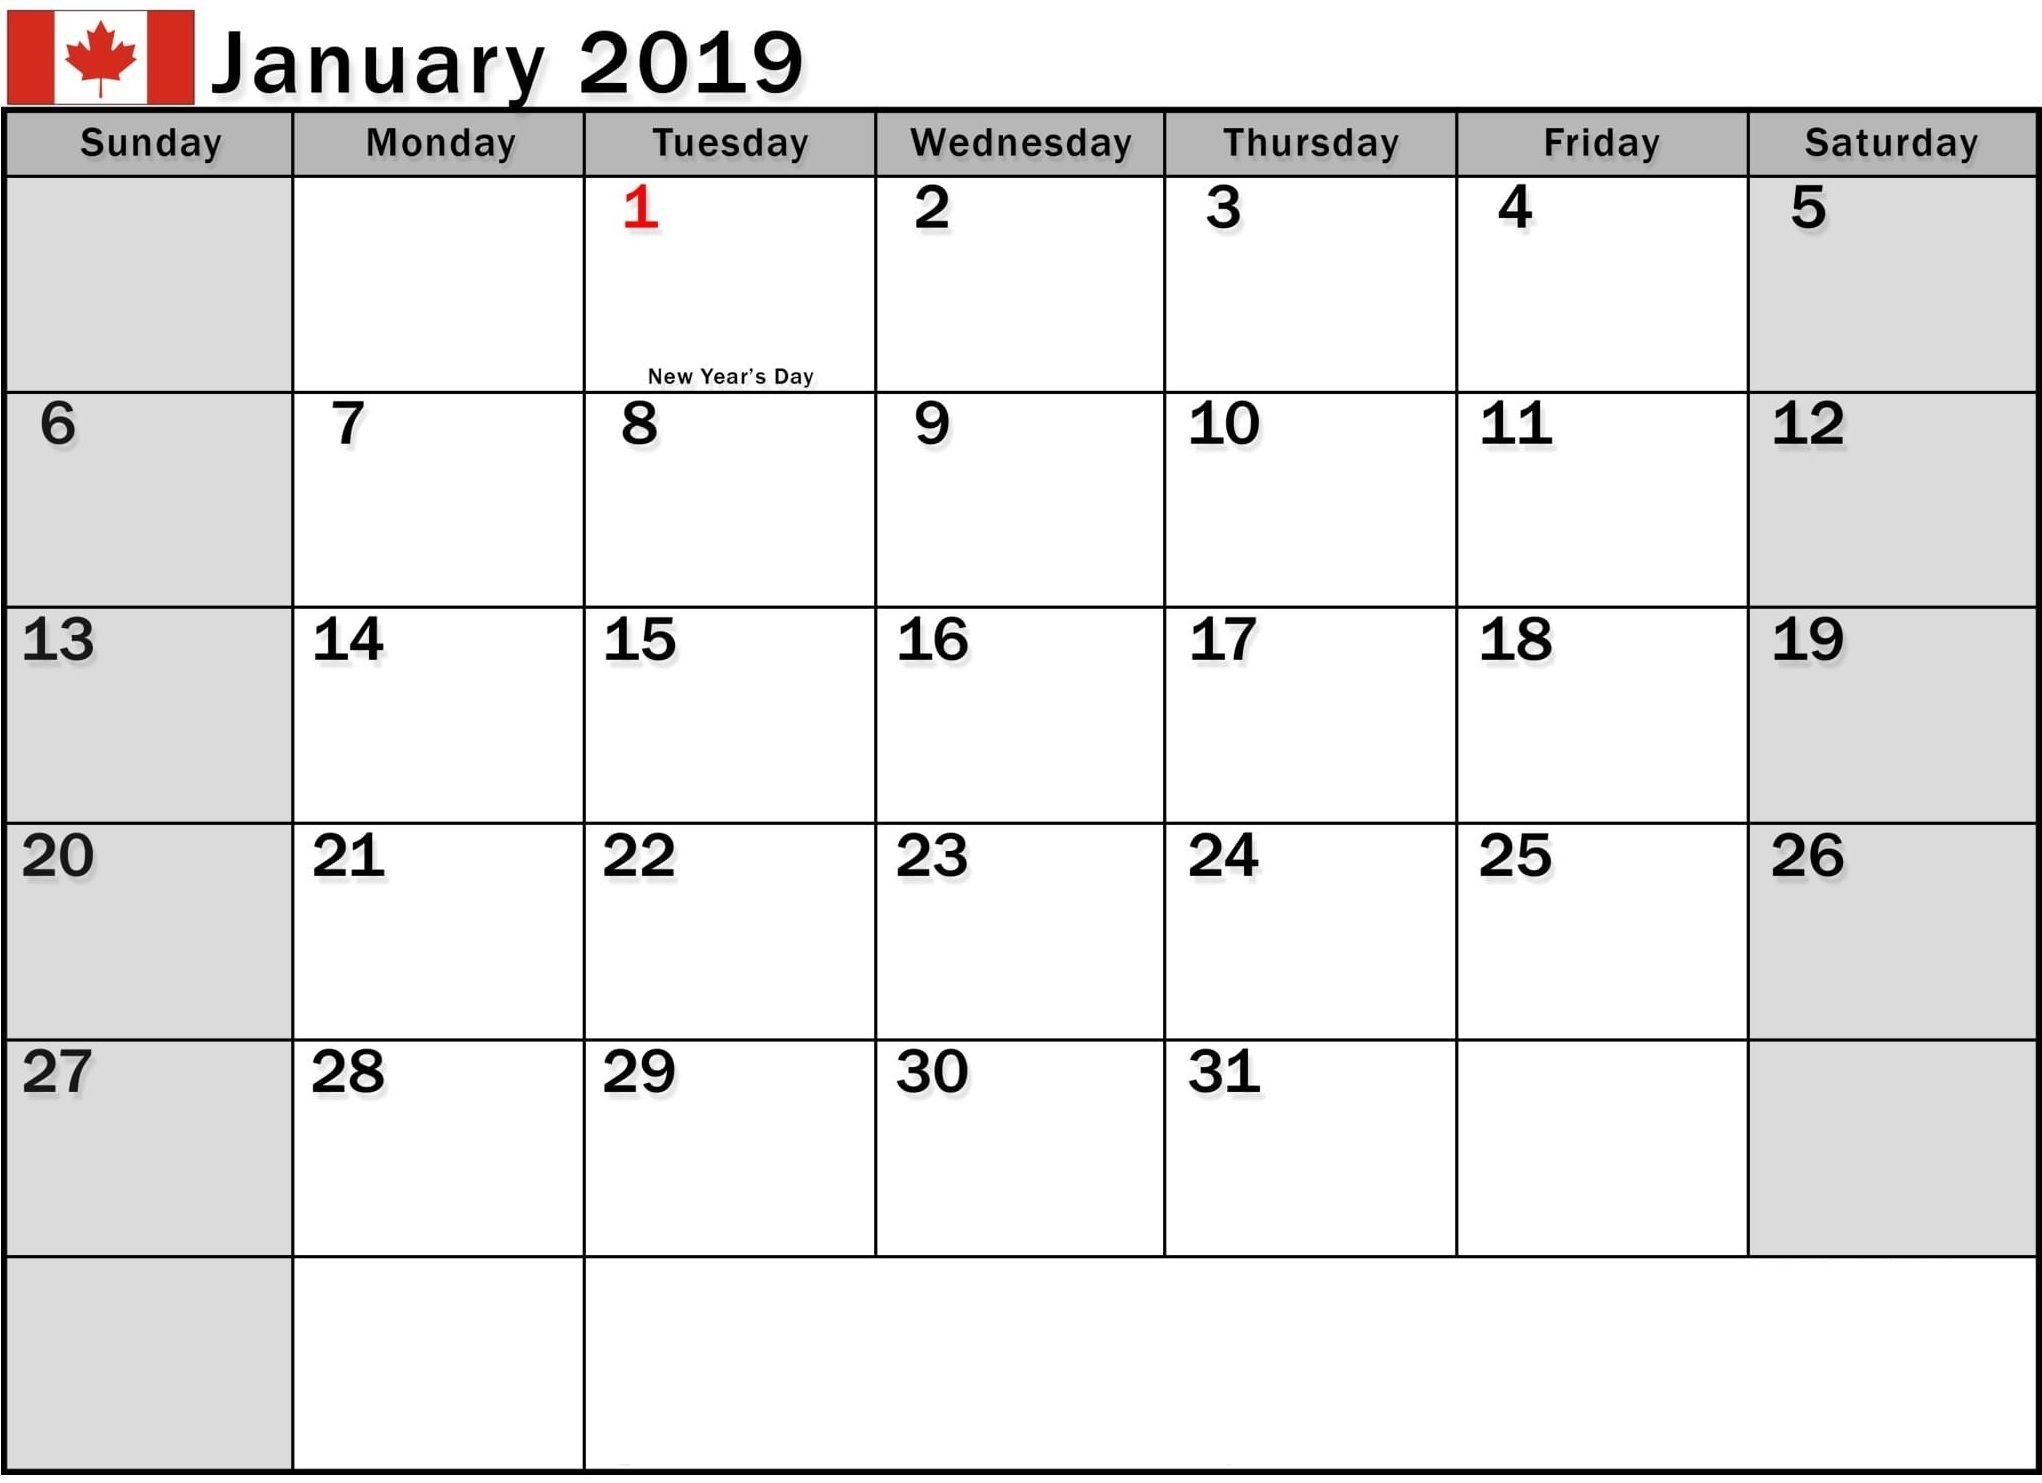 January 2019 Calendar Canada Printable | 150+ January 2019 Calendar Calendar Of 2019 Canada